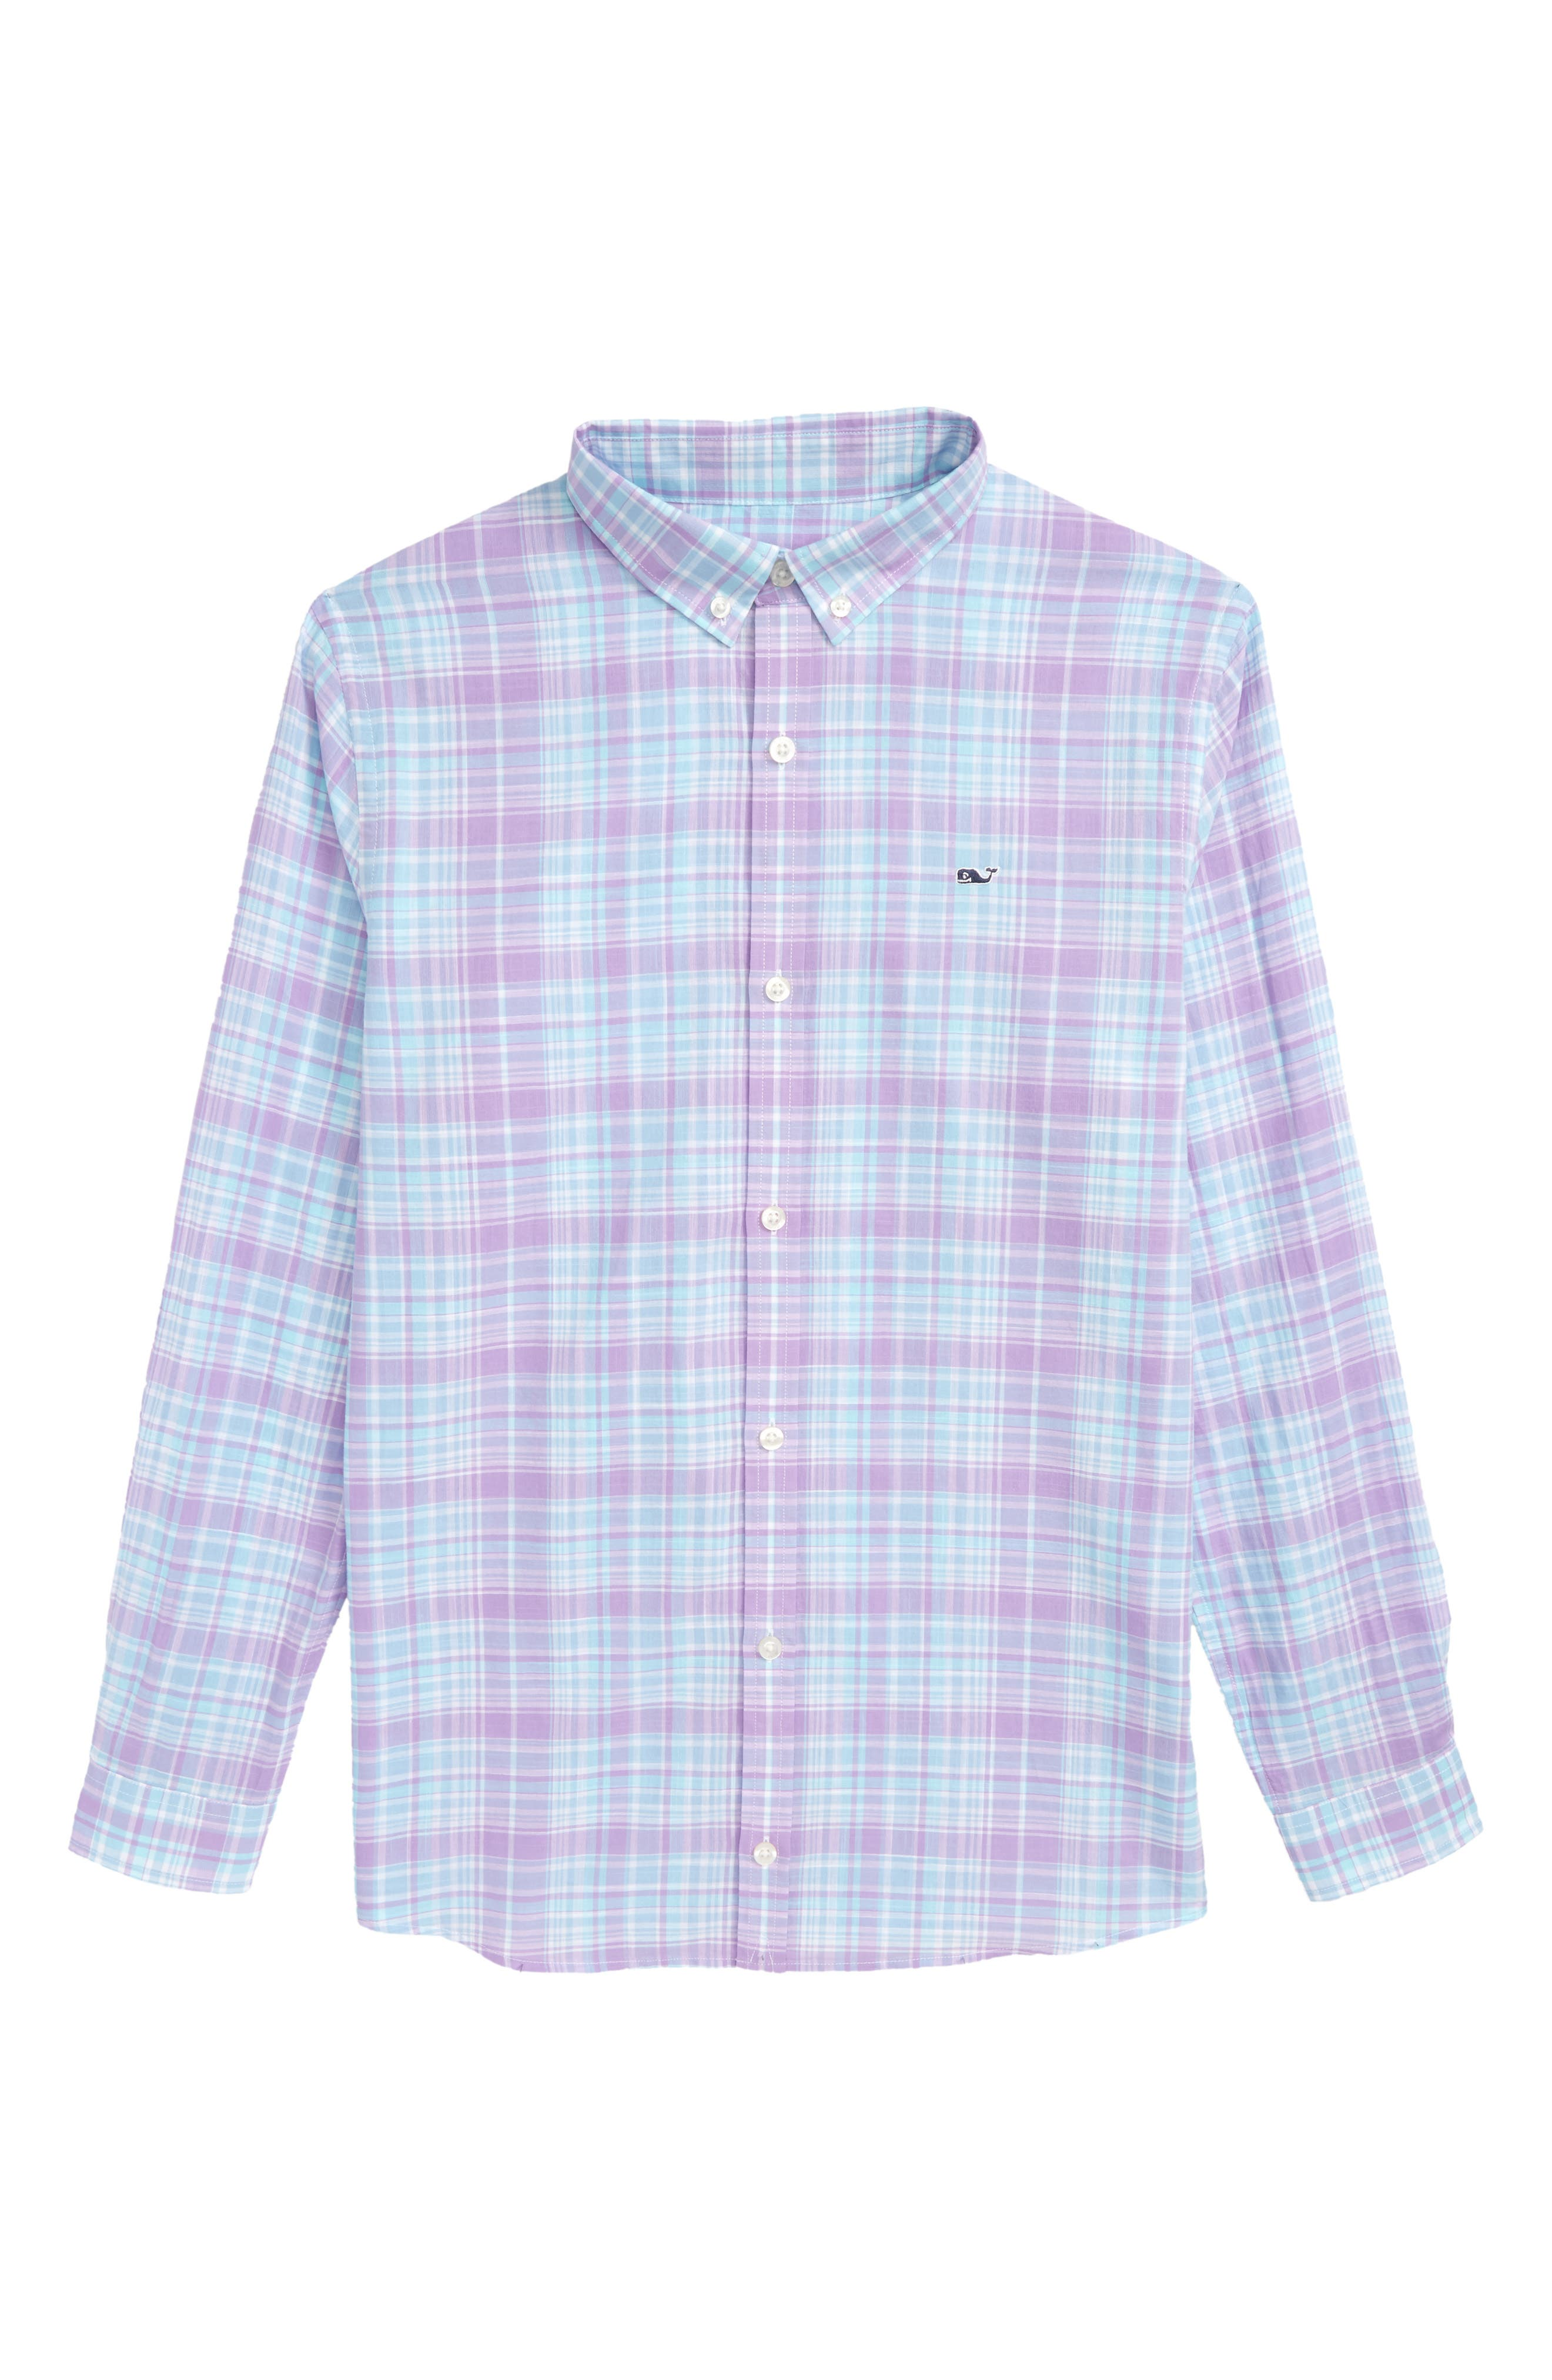 New Prov Beach Plaid Woven Shirt,                         Main,                         color, Sea Urchin